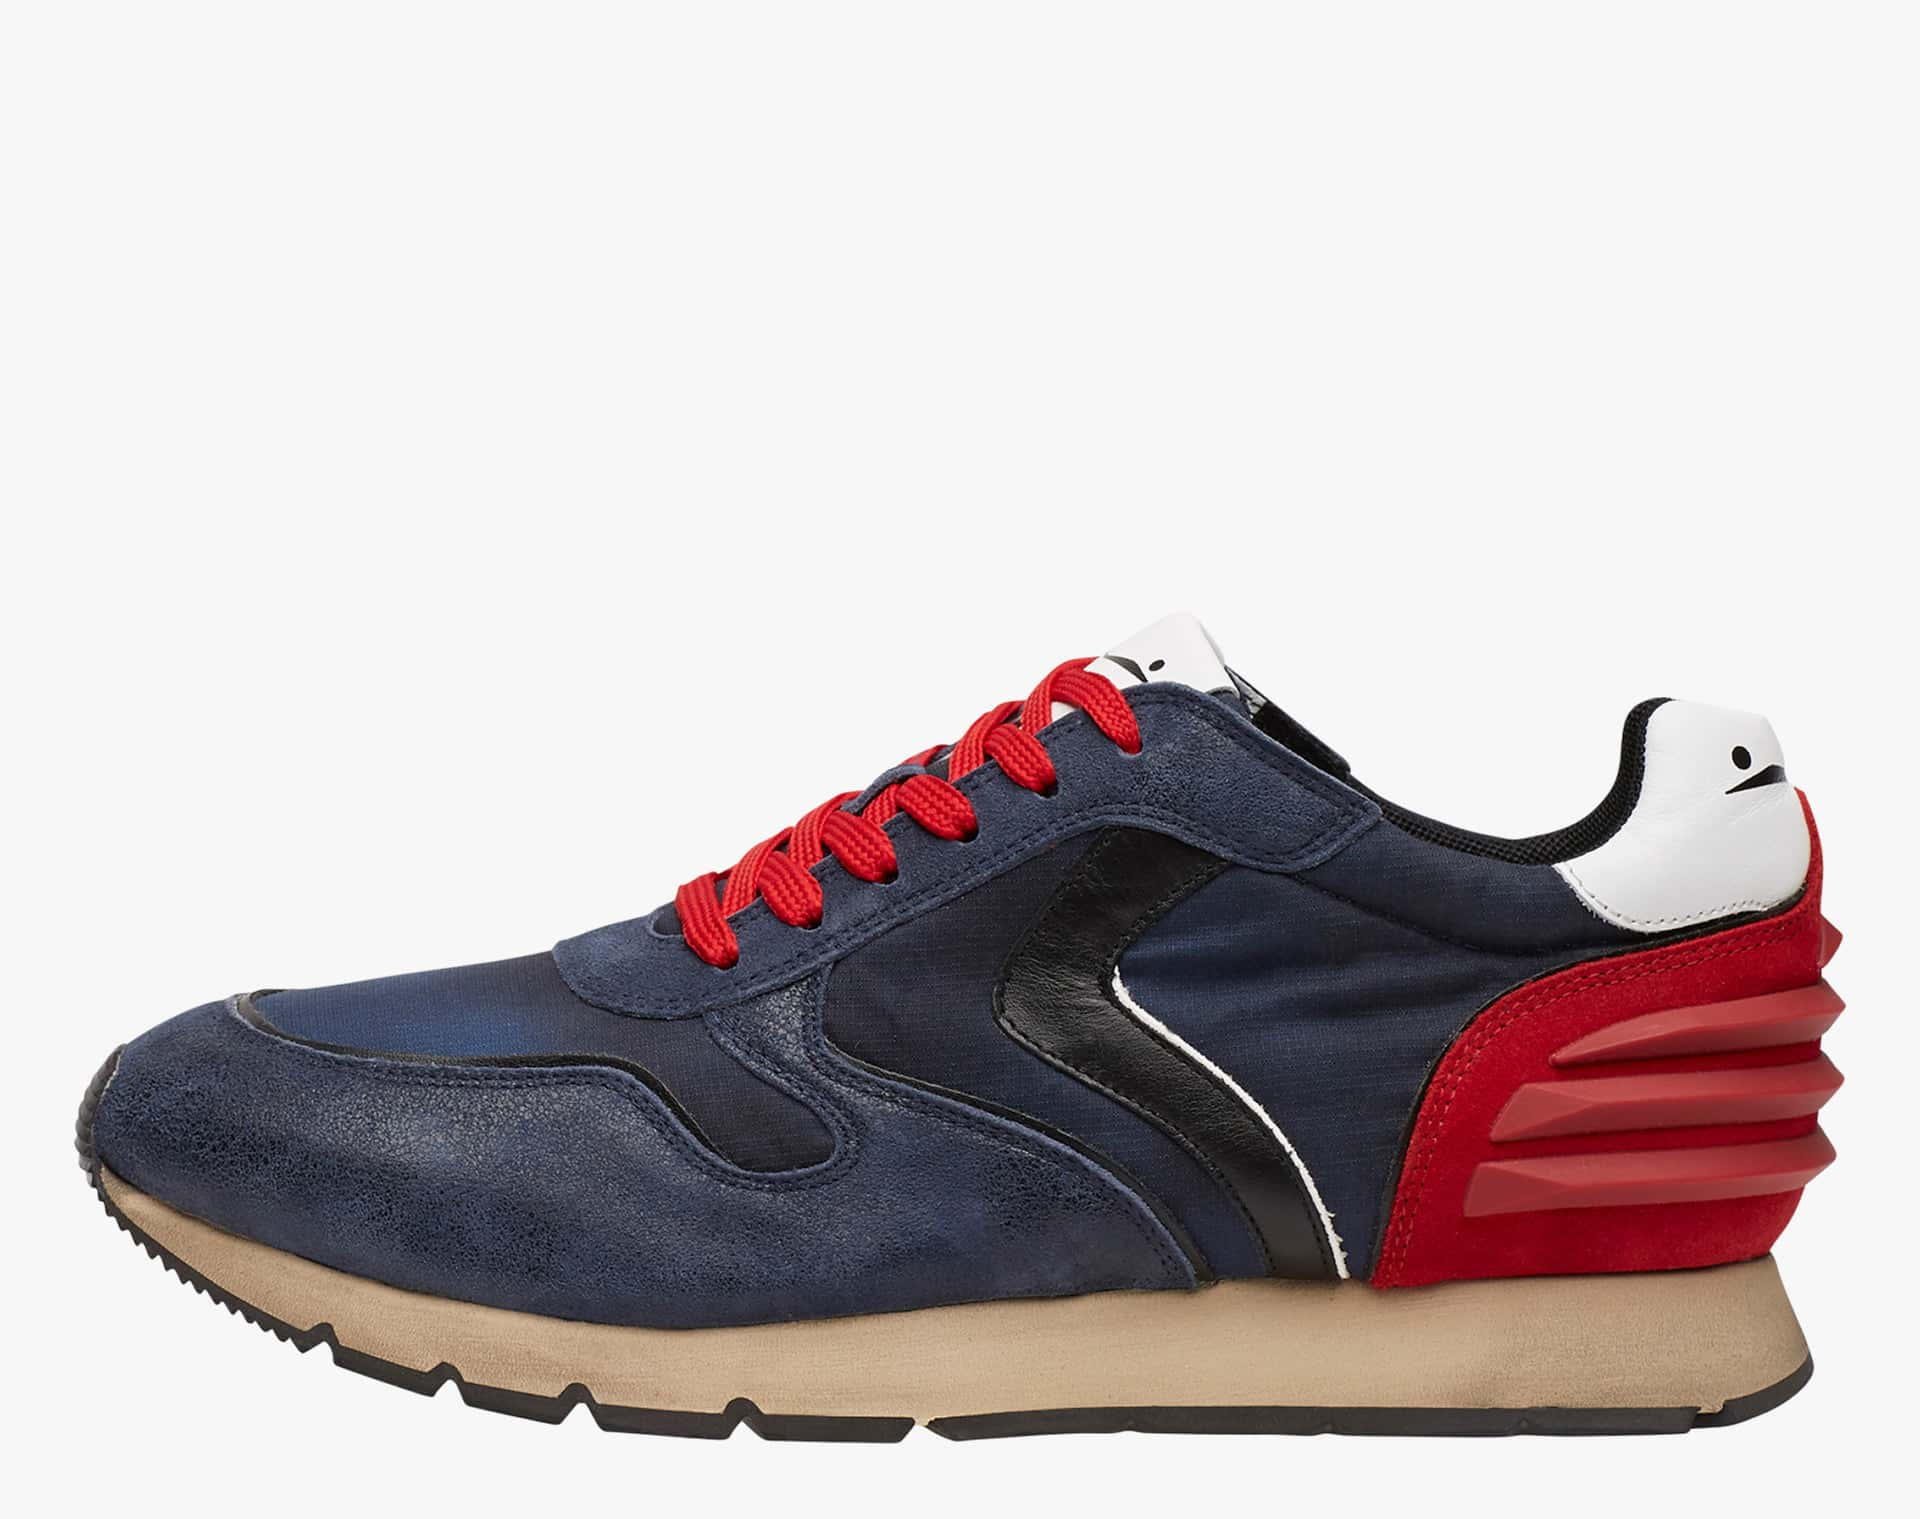 LIAM POWER - Sneakers in leather - Dark Blue-Black-Red